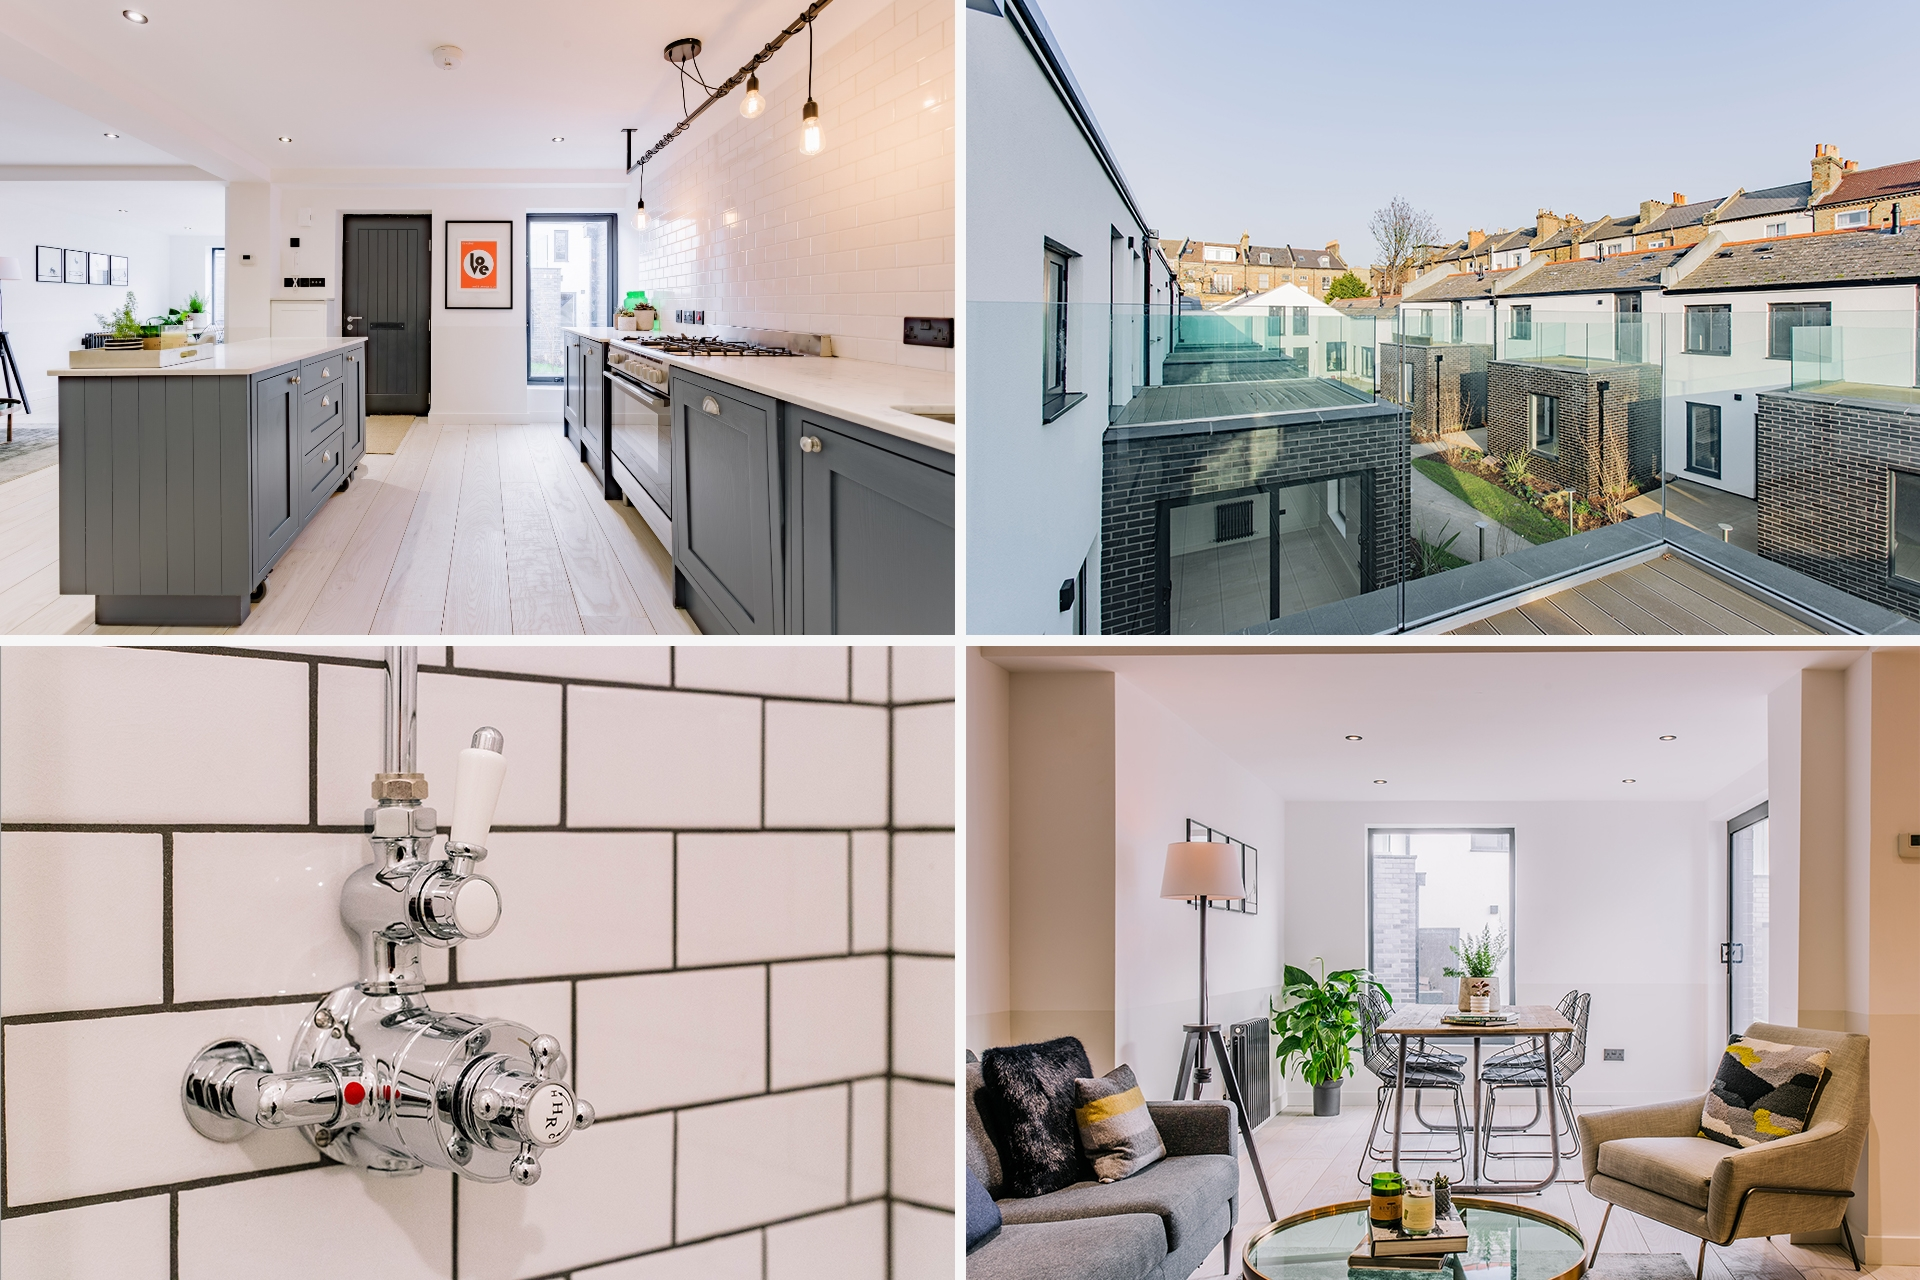 Four images inside Fonthill Mews, Finsbury Park properties. Graphic design by Barefaced Studios, design agency based in Islington, North London.